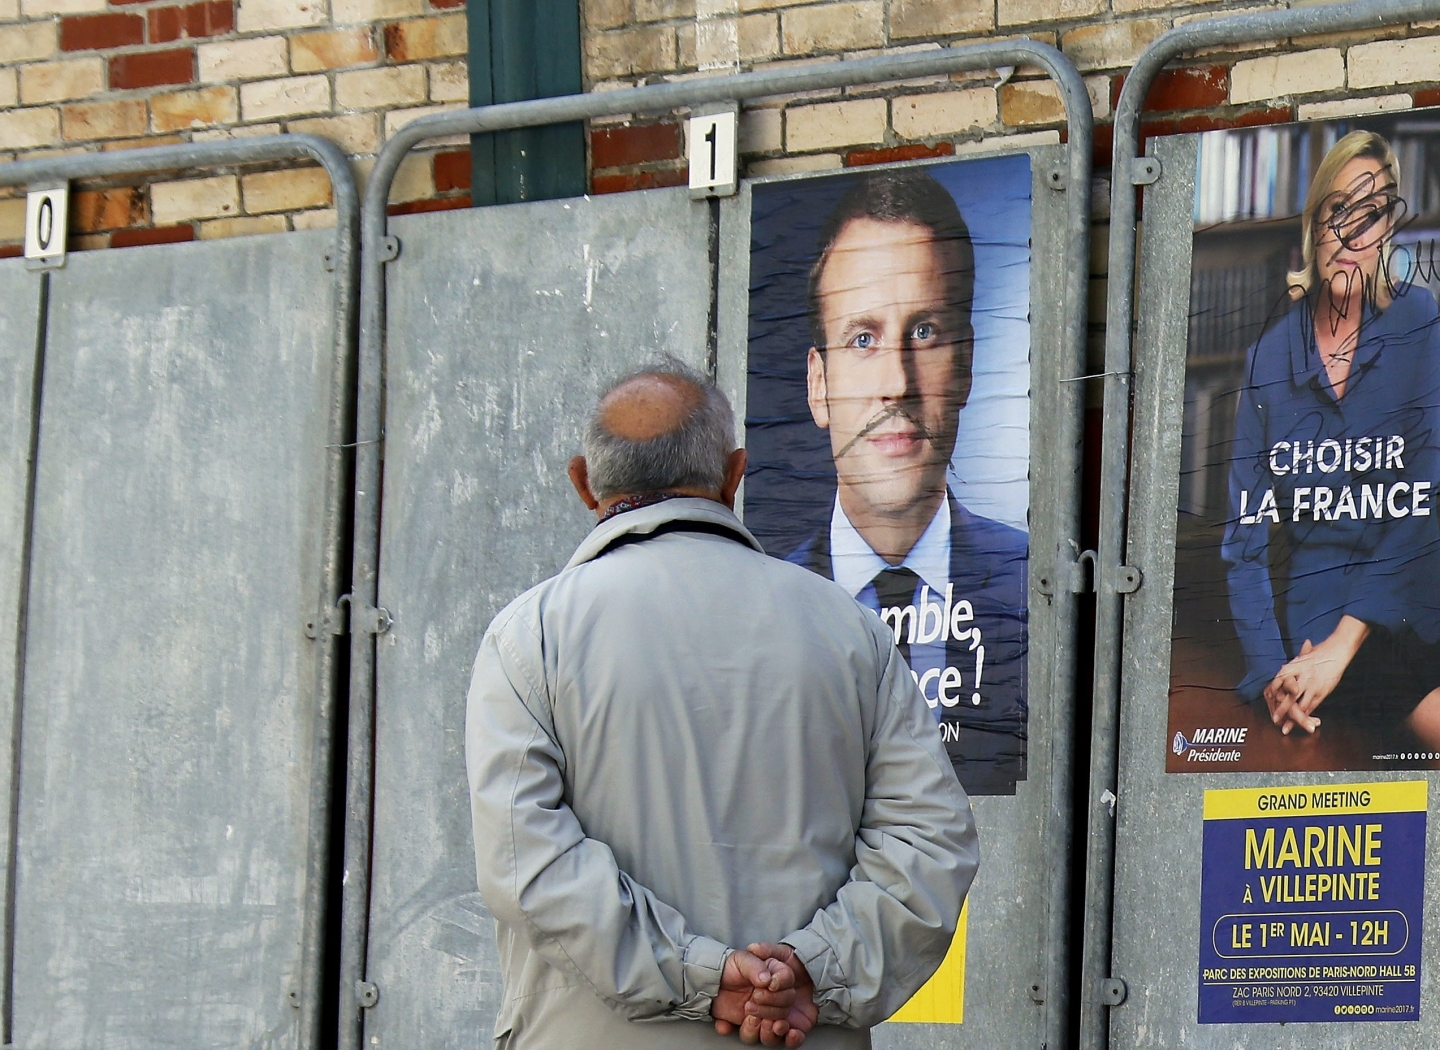 Election campaign posters in Saint Jean de Luz, southwestern France (AP Photo/Bob Edme)